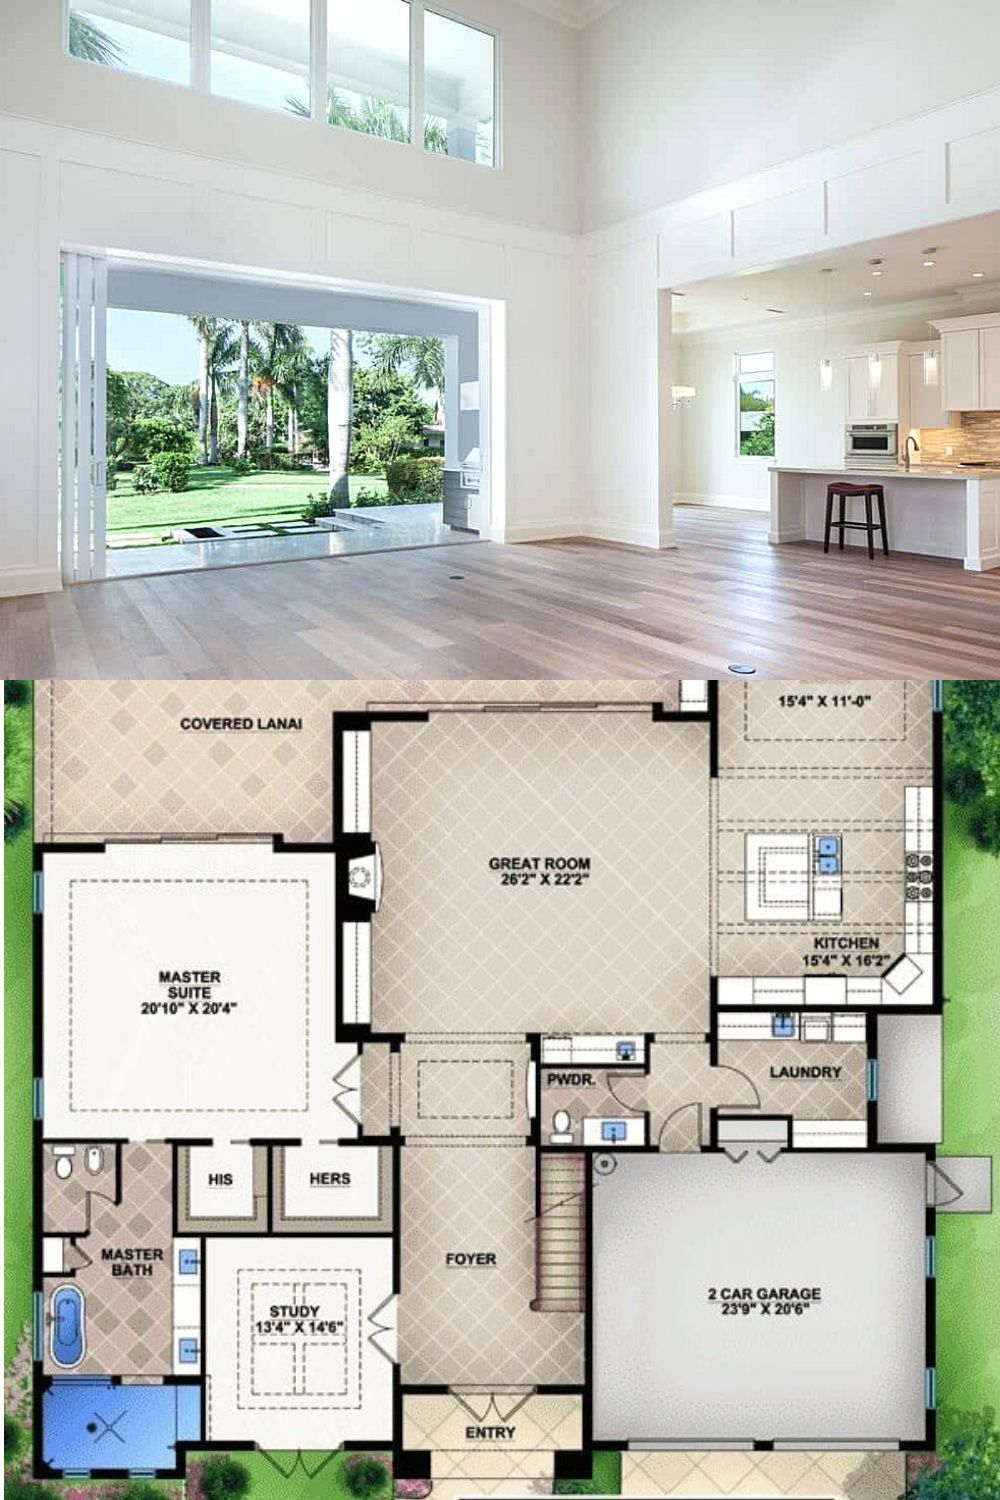 3 Bedroom Two Story Florida Home With A Bar Floor Plan Florida House Plans Mansion Floor Plan House Plans